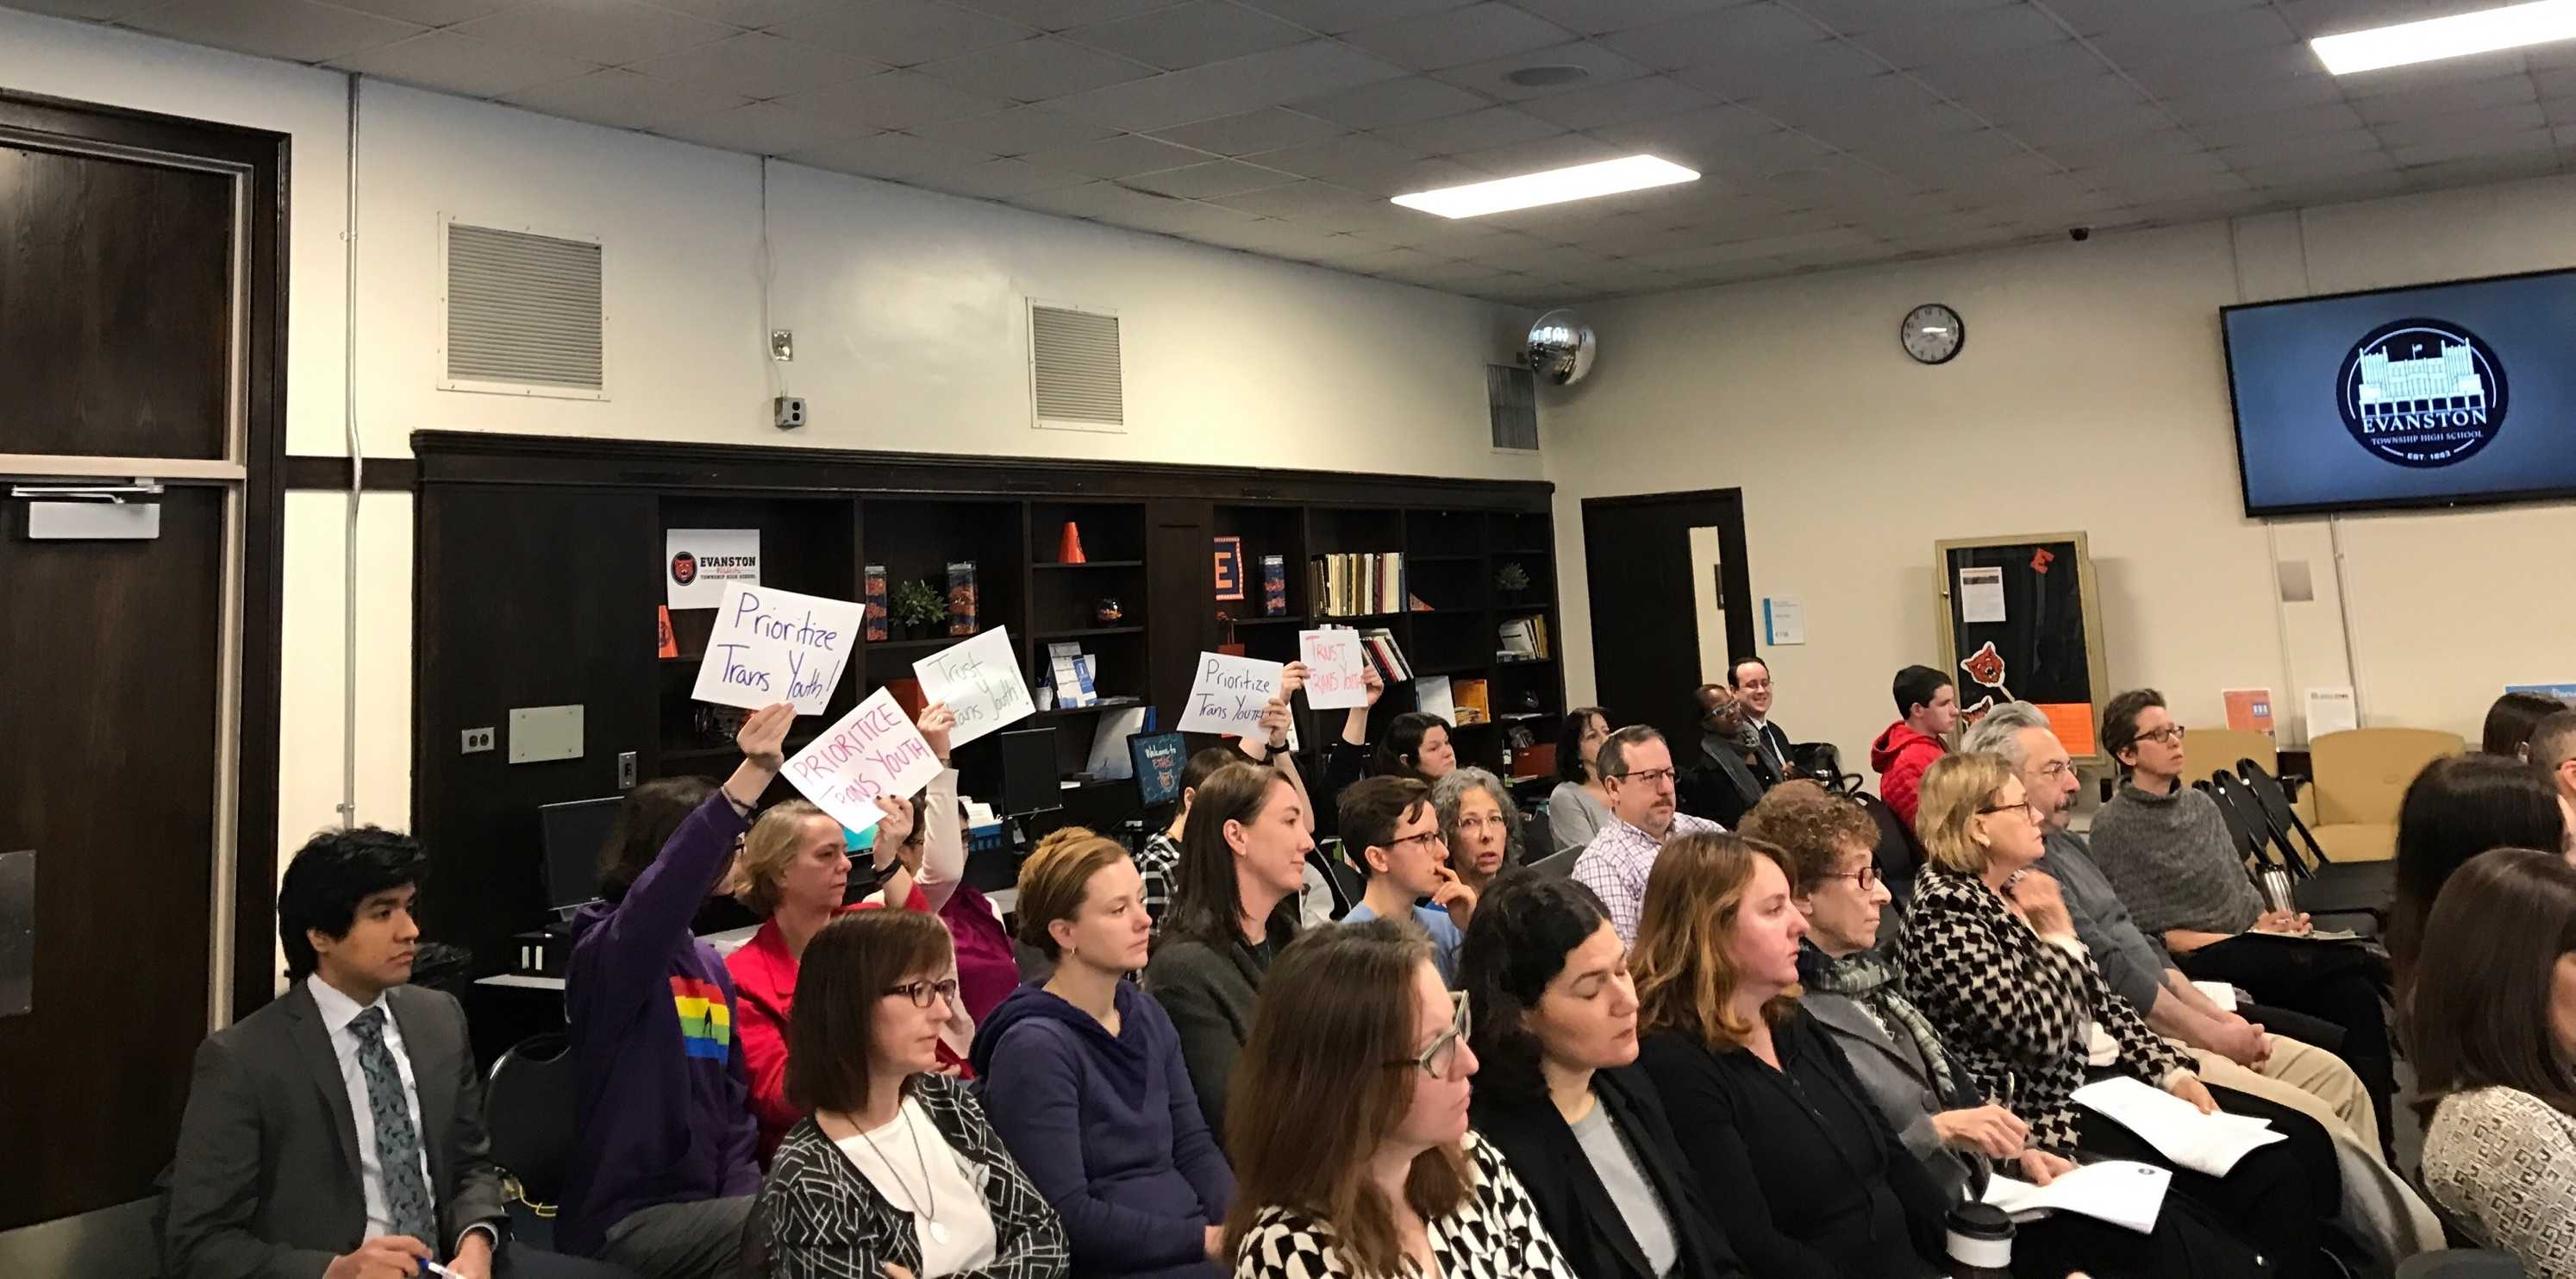 Community members attend a District 202 School Board Policy Committee meeting Thursday. The committee decided at the meeting to draft new language that would allow transgender students to use the locker room that aligns with their gender.